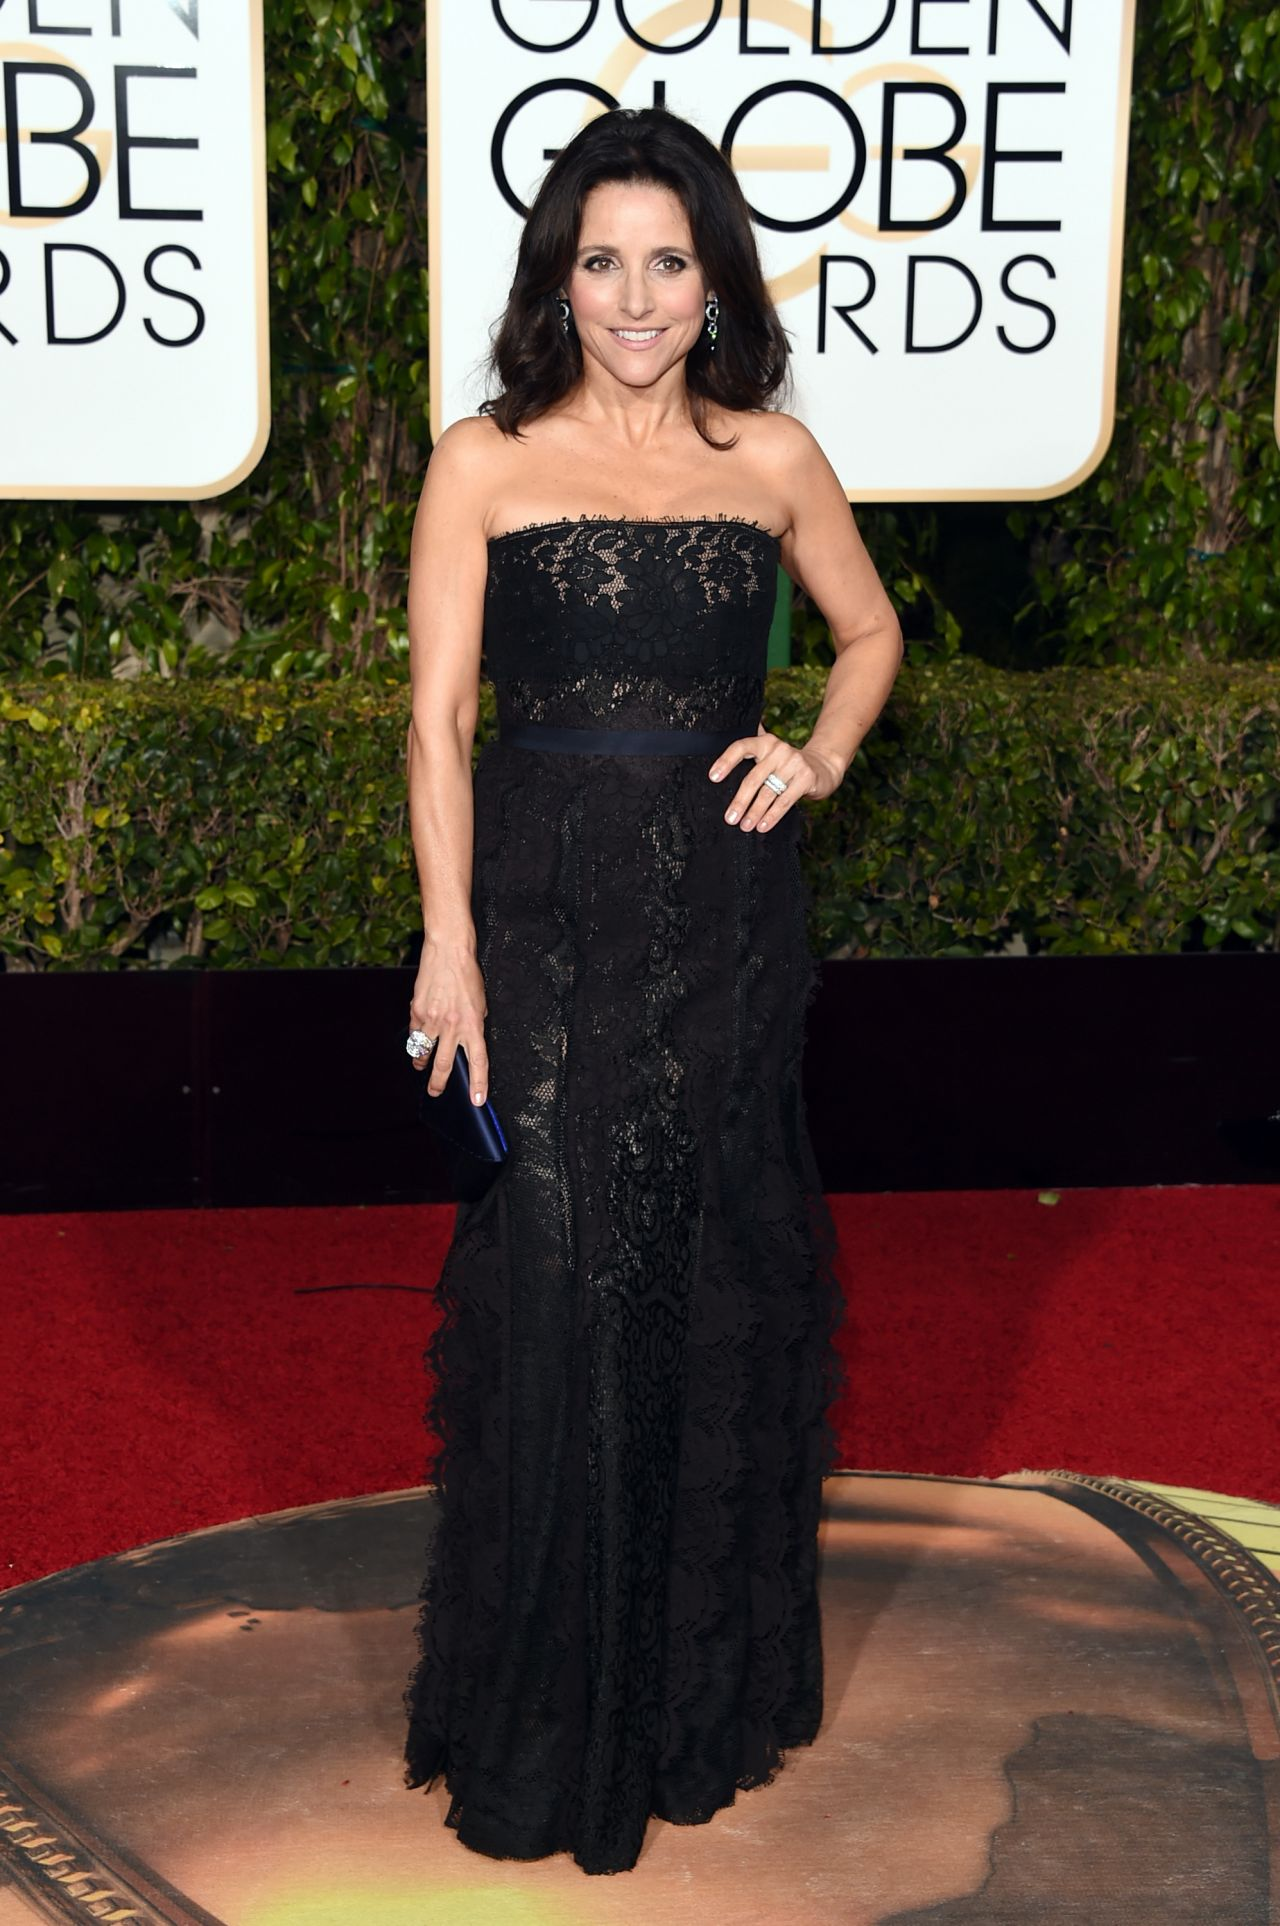 julia-louis-dreyfus-2016-golden-globe-awards-in-beverly-hills-1